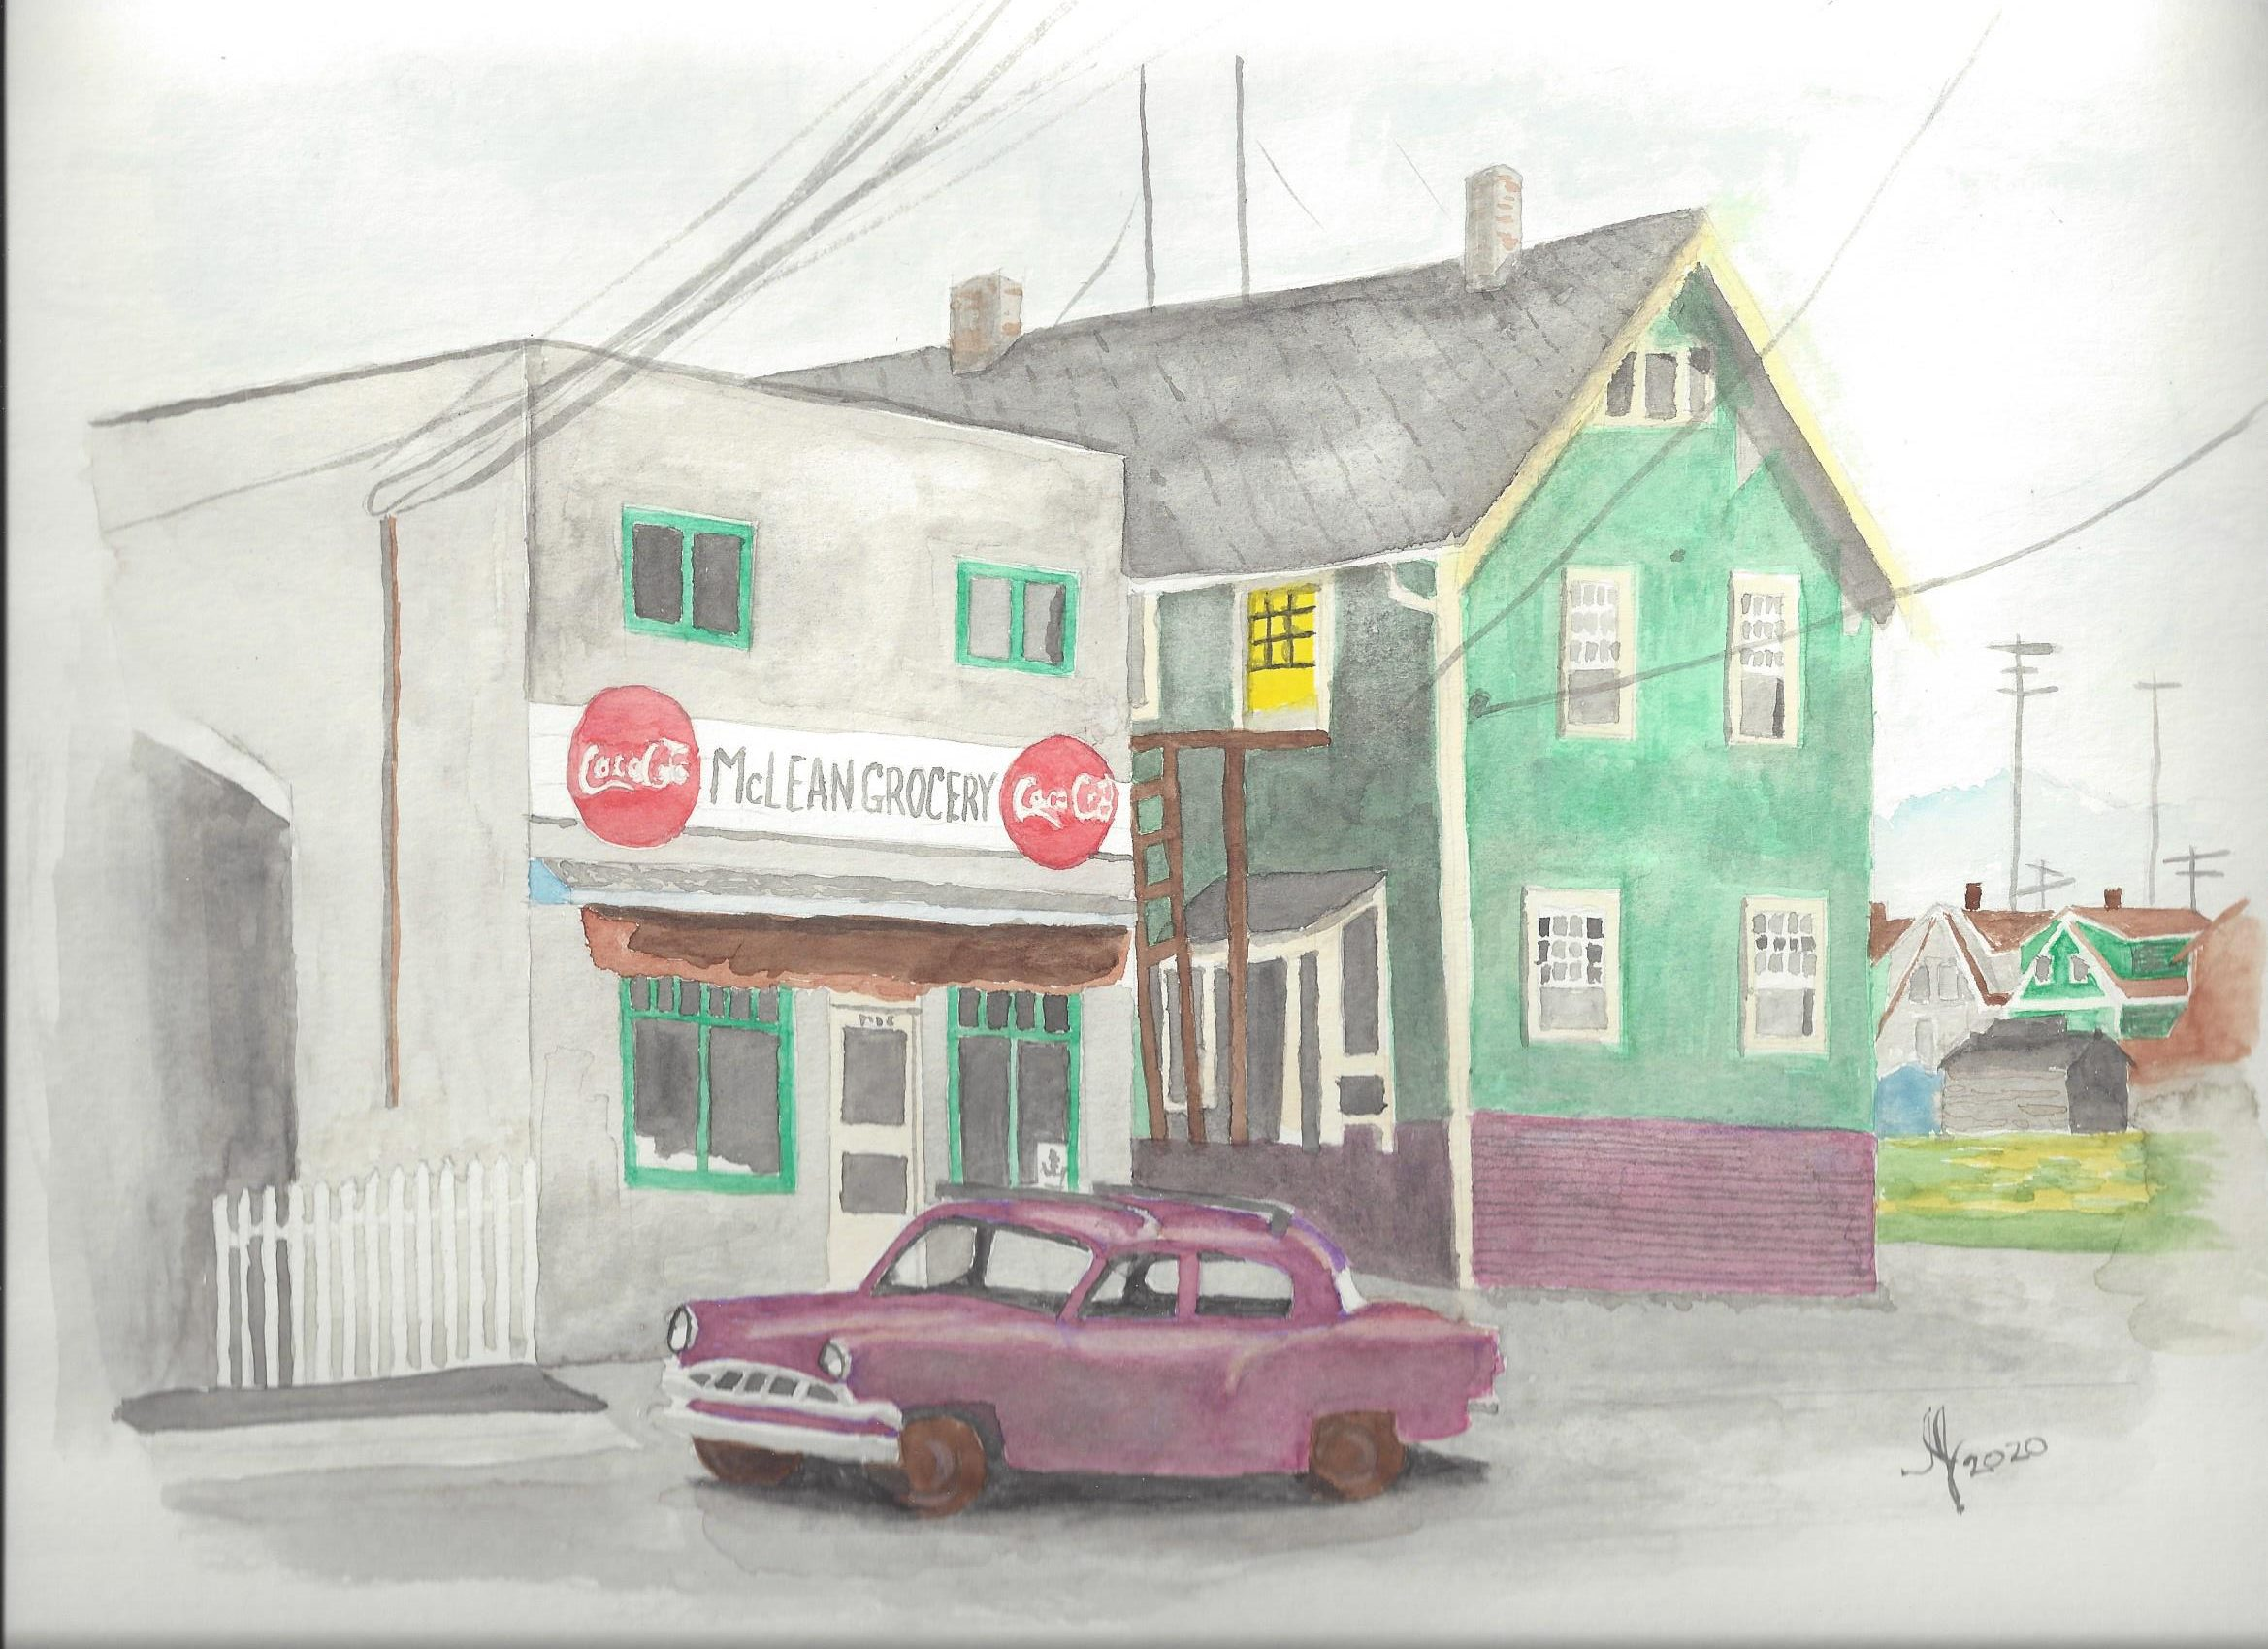 A watercolour of McLean Grocery, Vancouver, BC in the 60s